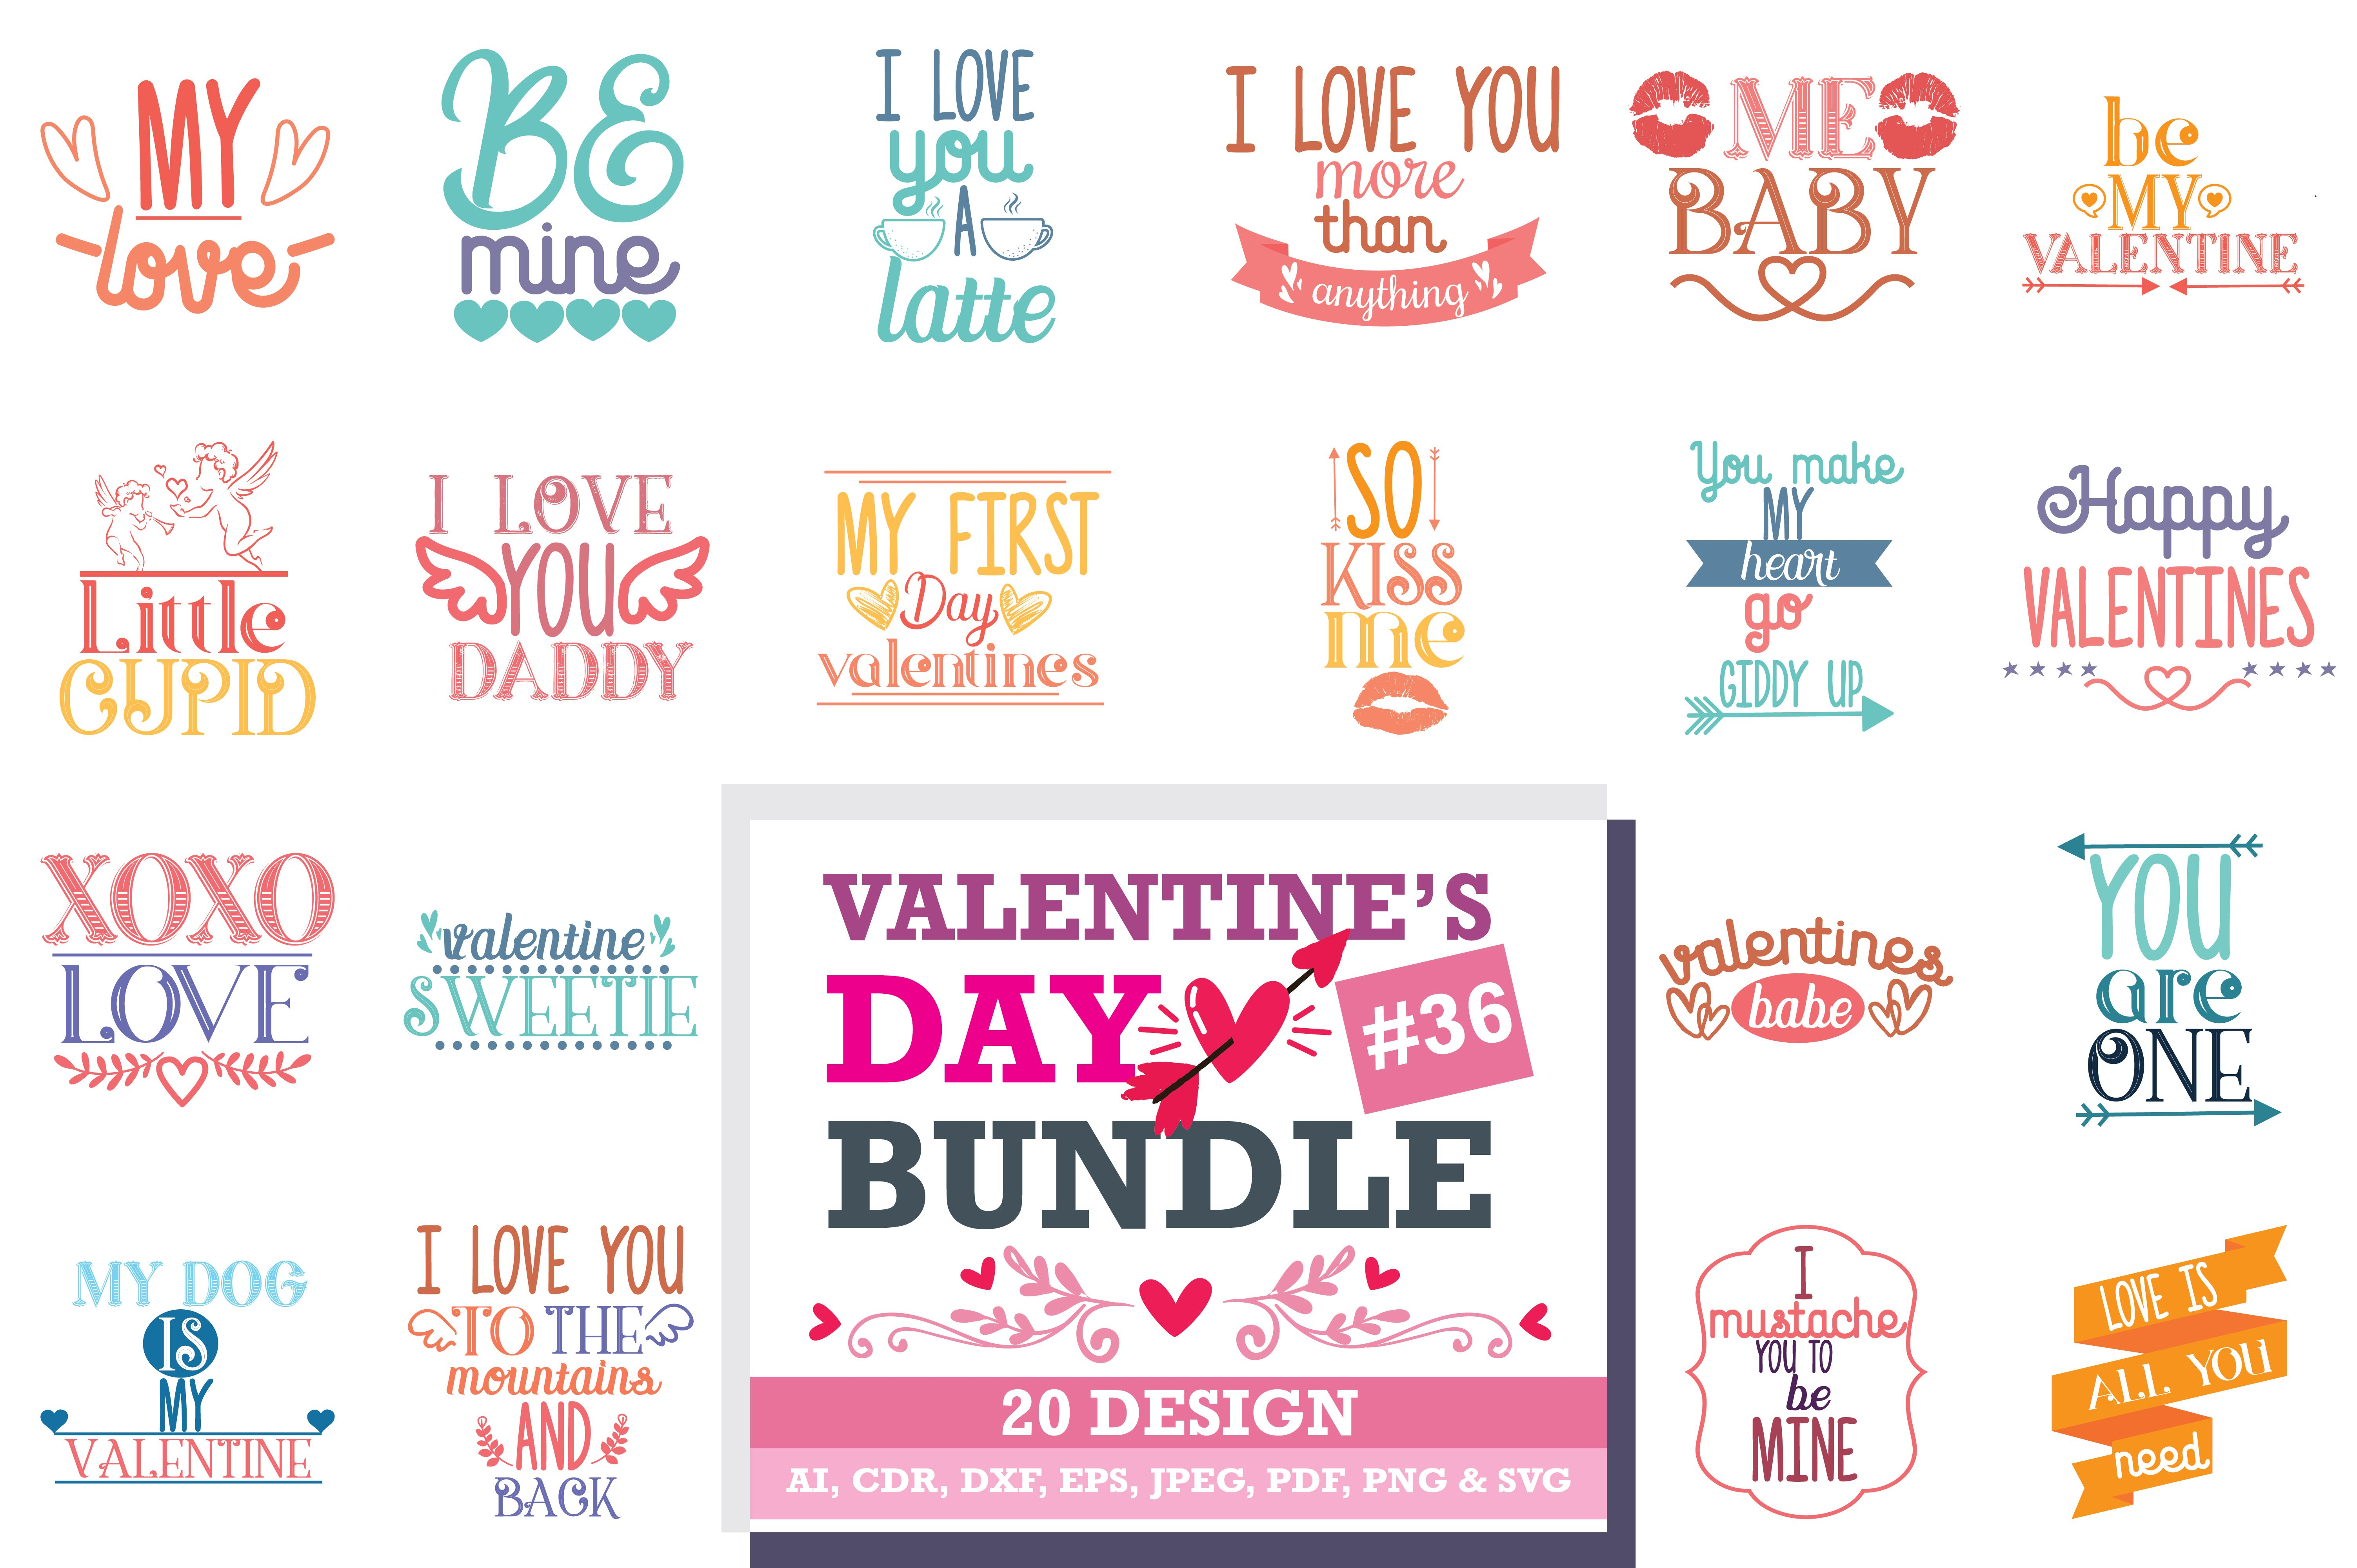 Download Free Mega Bundle Svg Valentine S Day Graphic By Thelucky Creative Fabrica Valentine Happy Love Day Day PSD Mockup Template